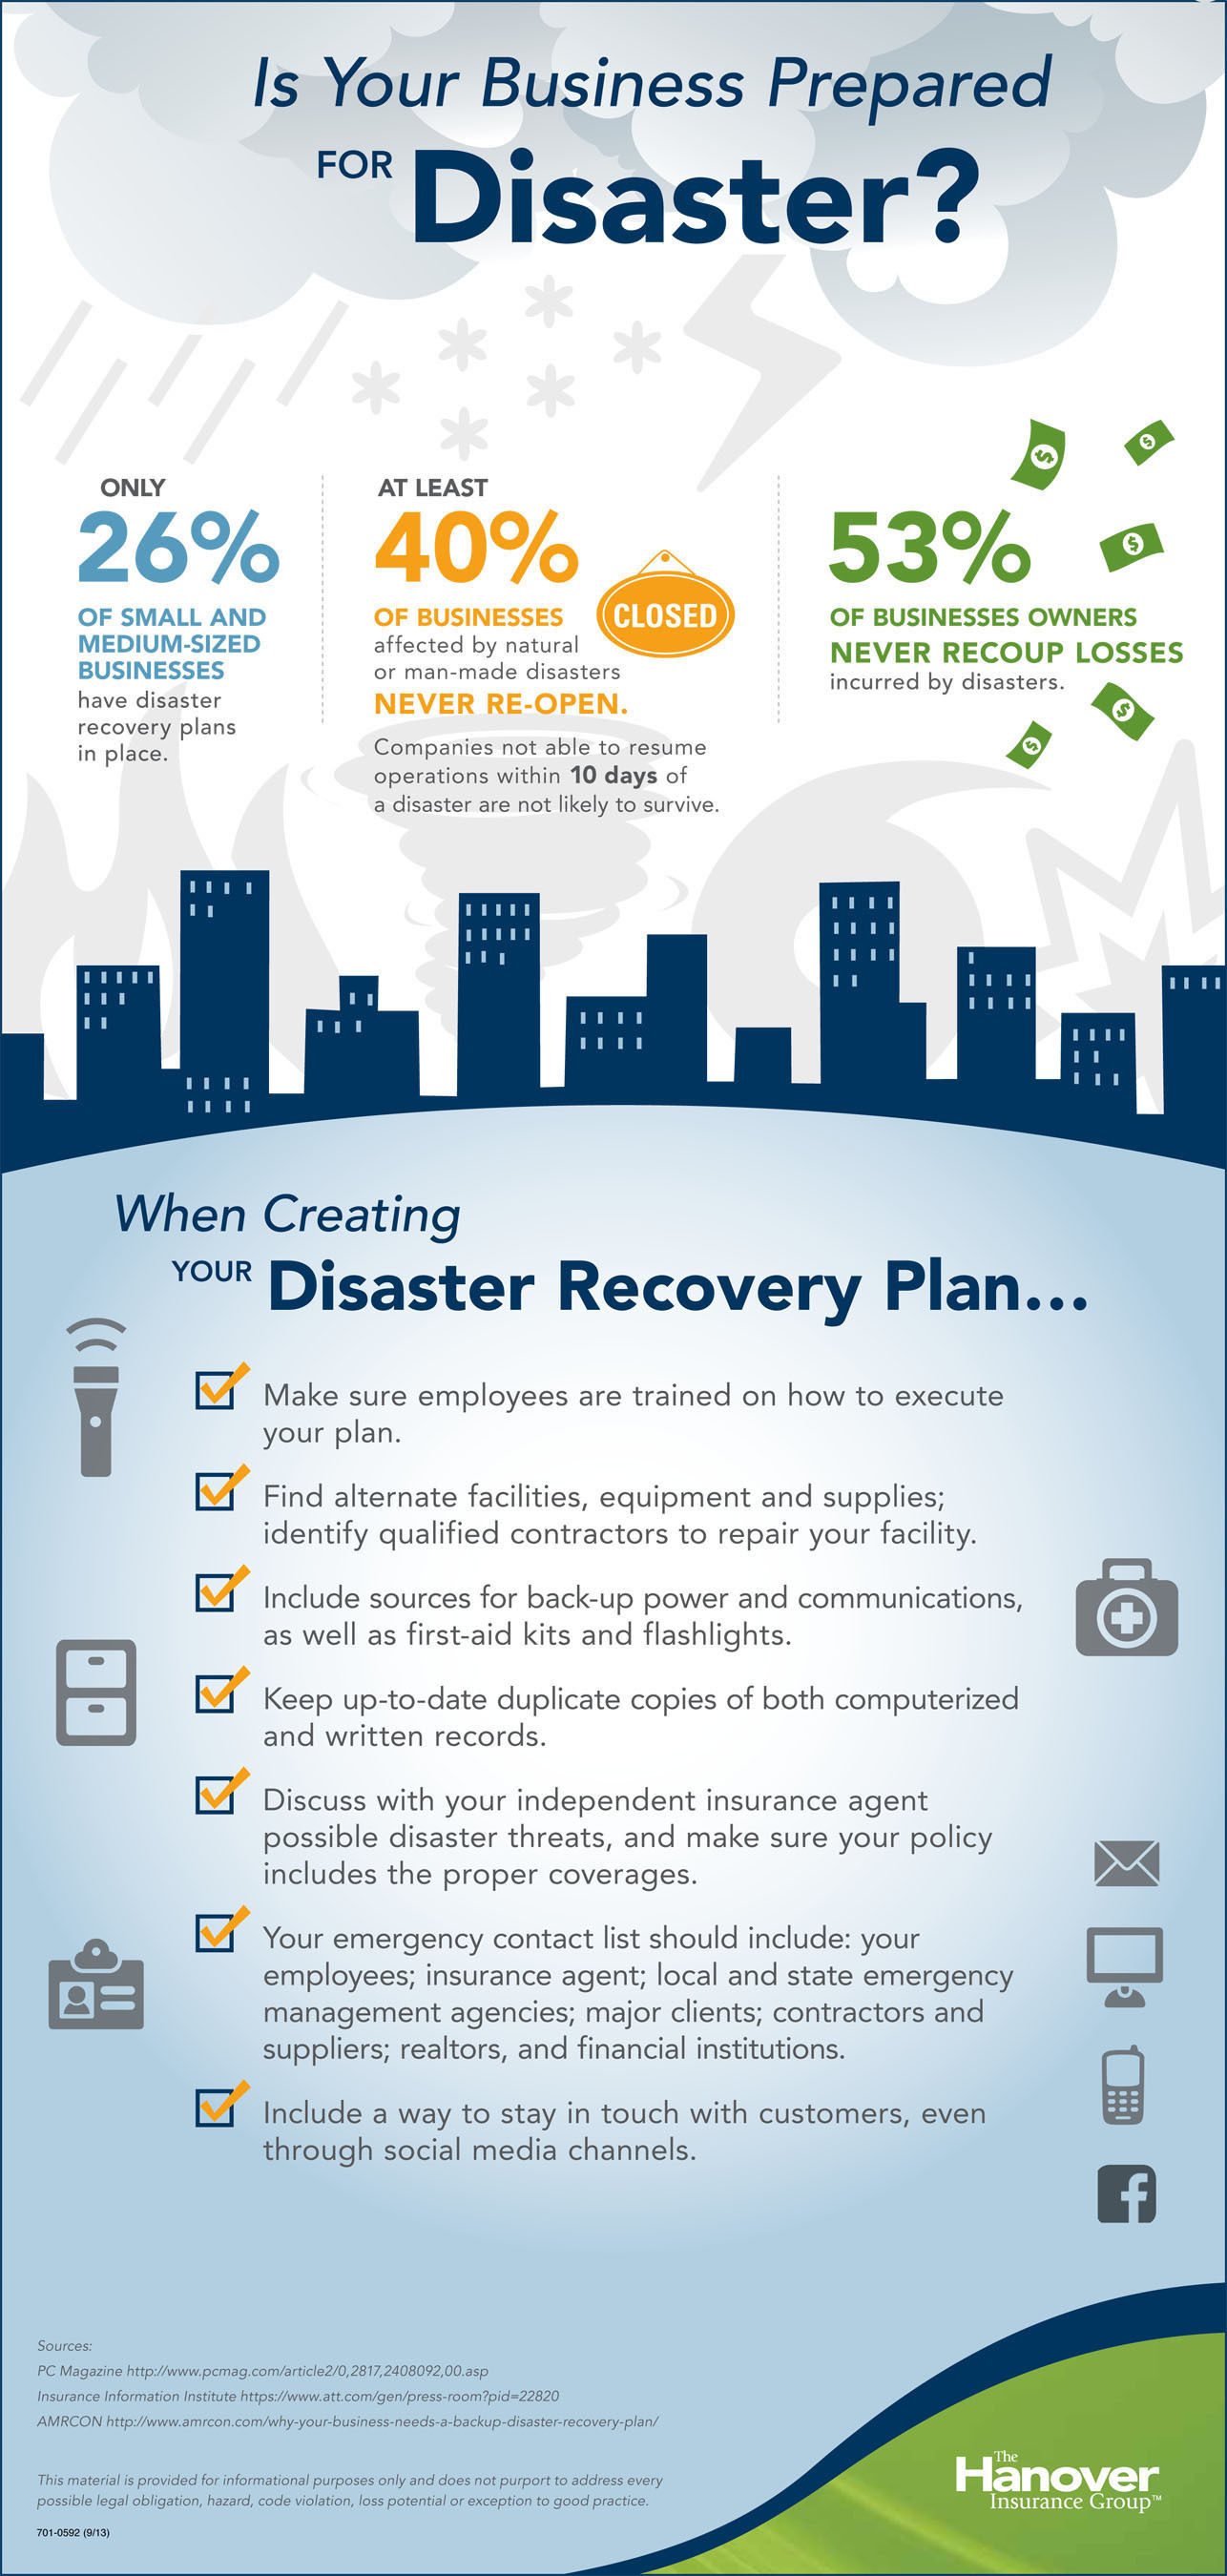 The Hanover Offers Tips for Protecting Your Business from Disaster.  (PRNewsFoto/The Hanover Insurance Group, ...